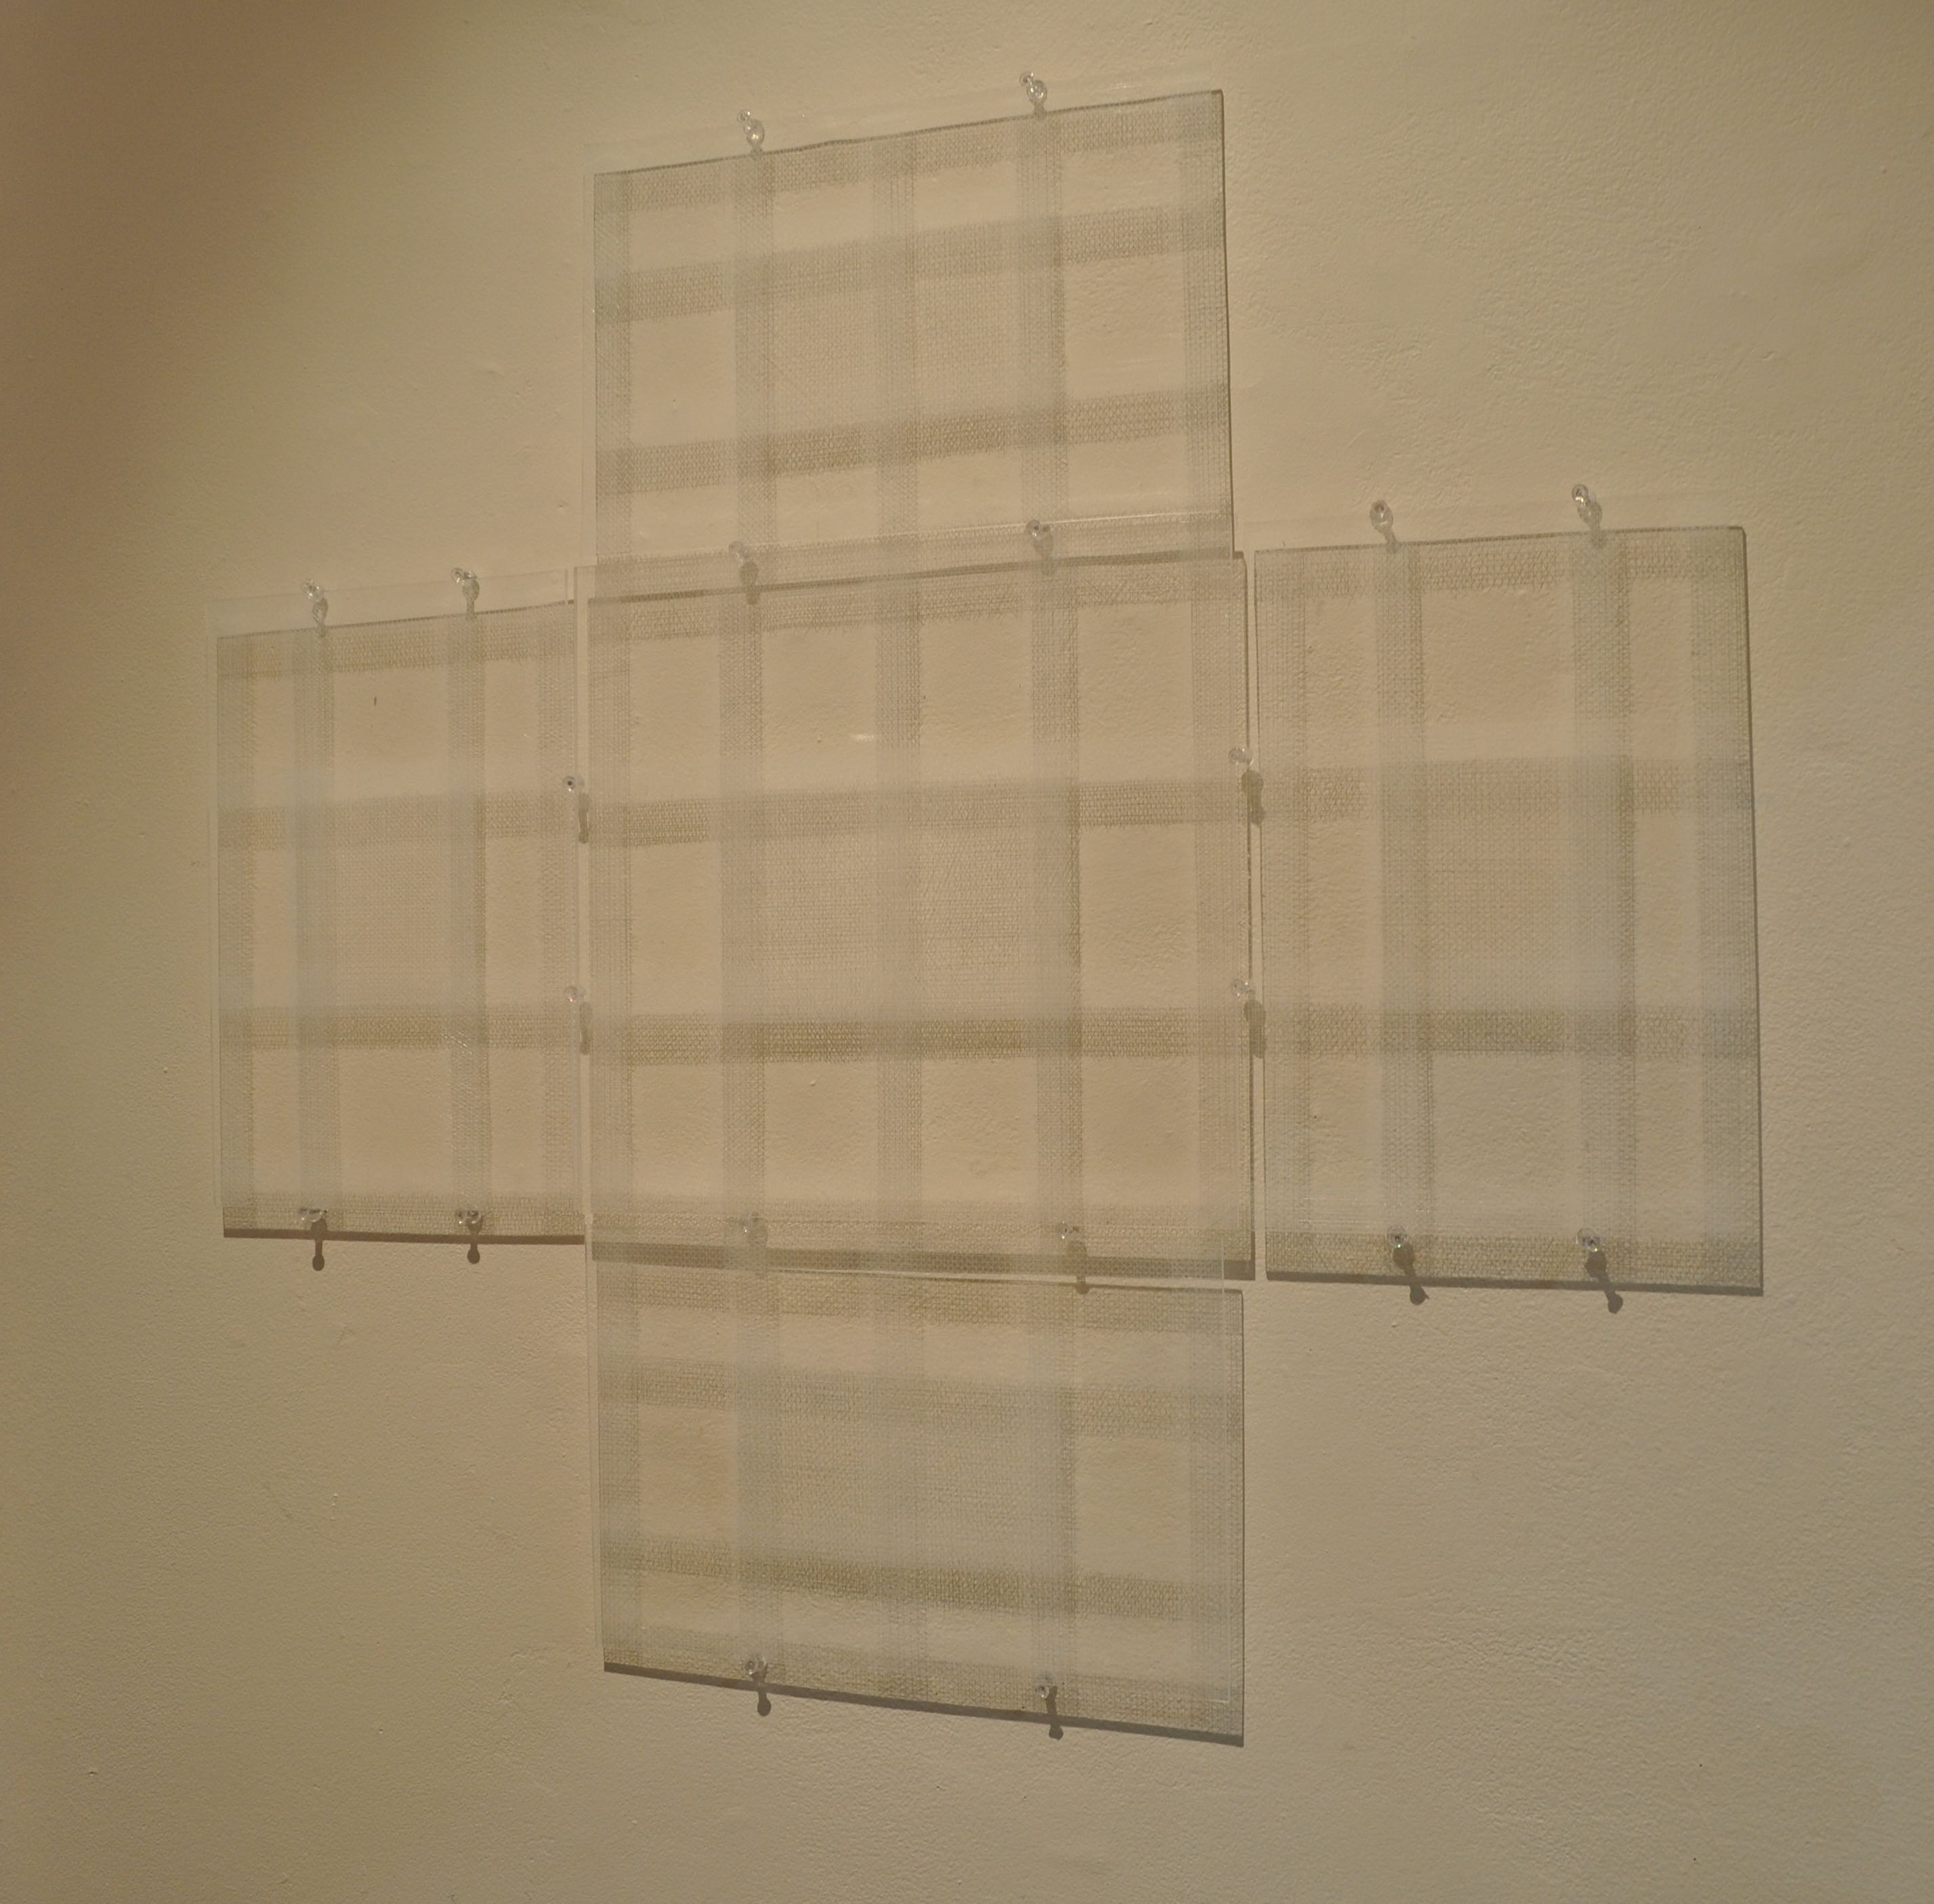 Big Cross 74x74cm Perspex and Drawing Pins 2009